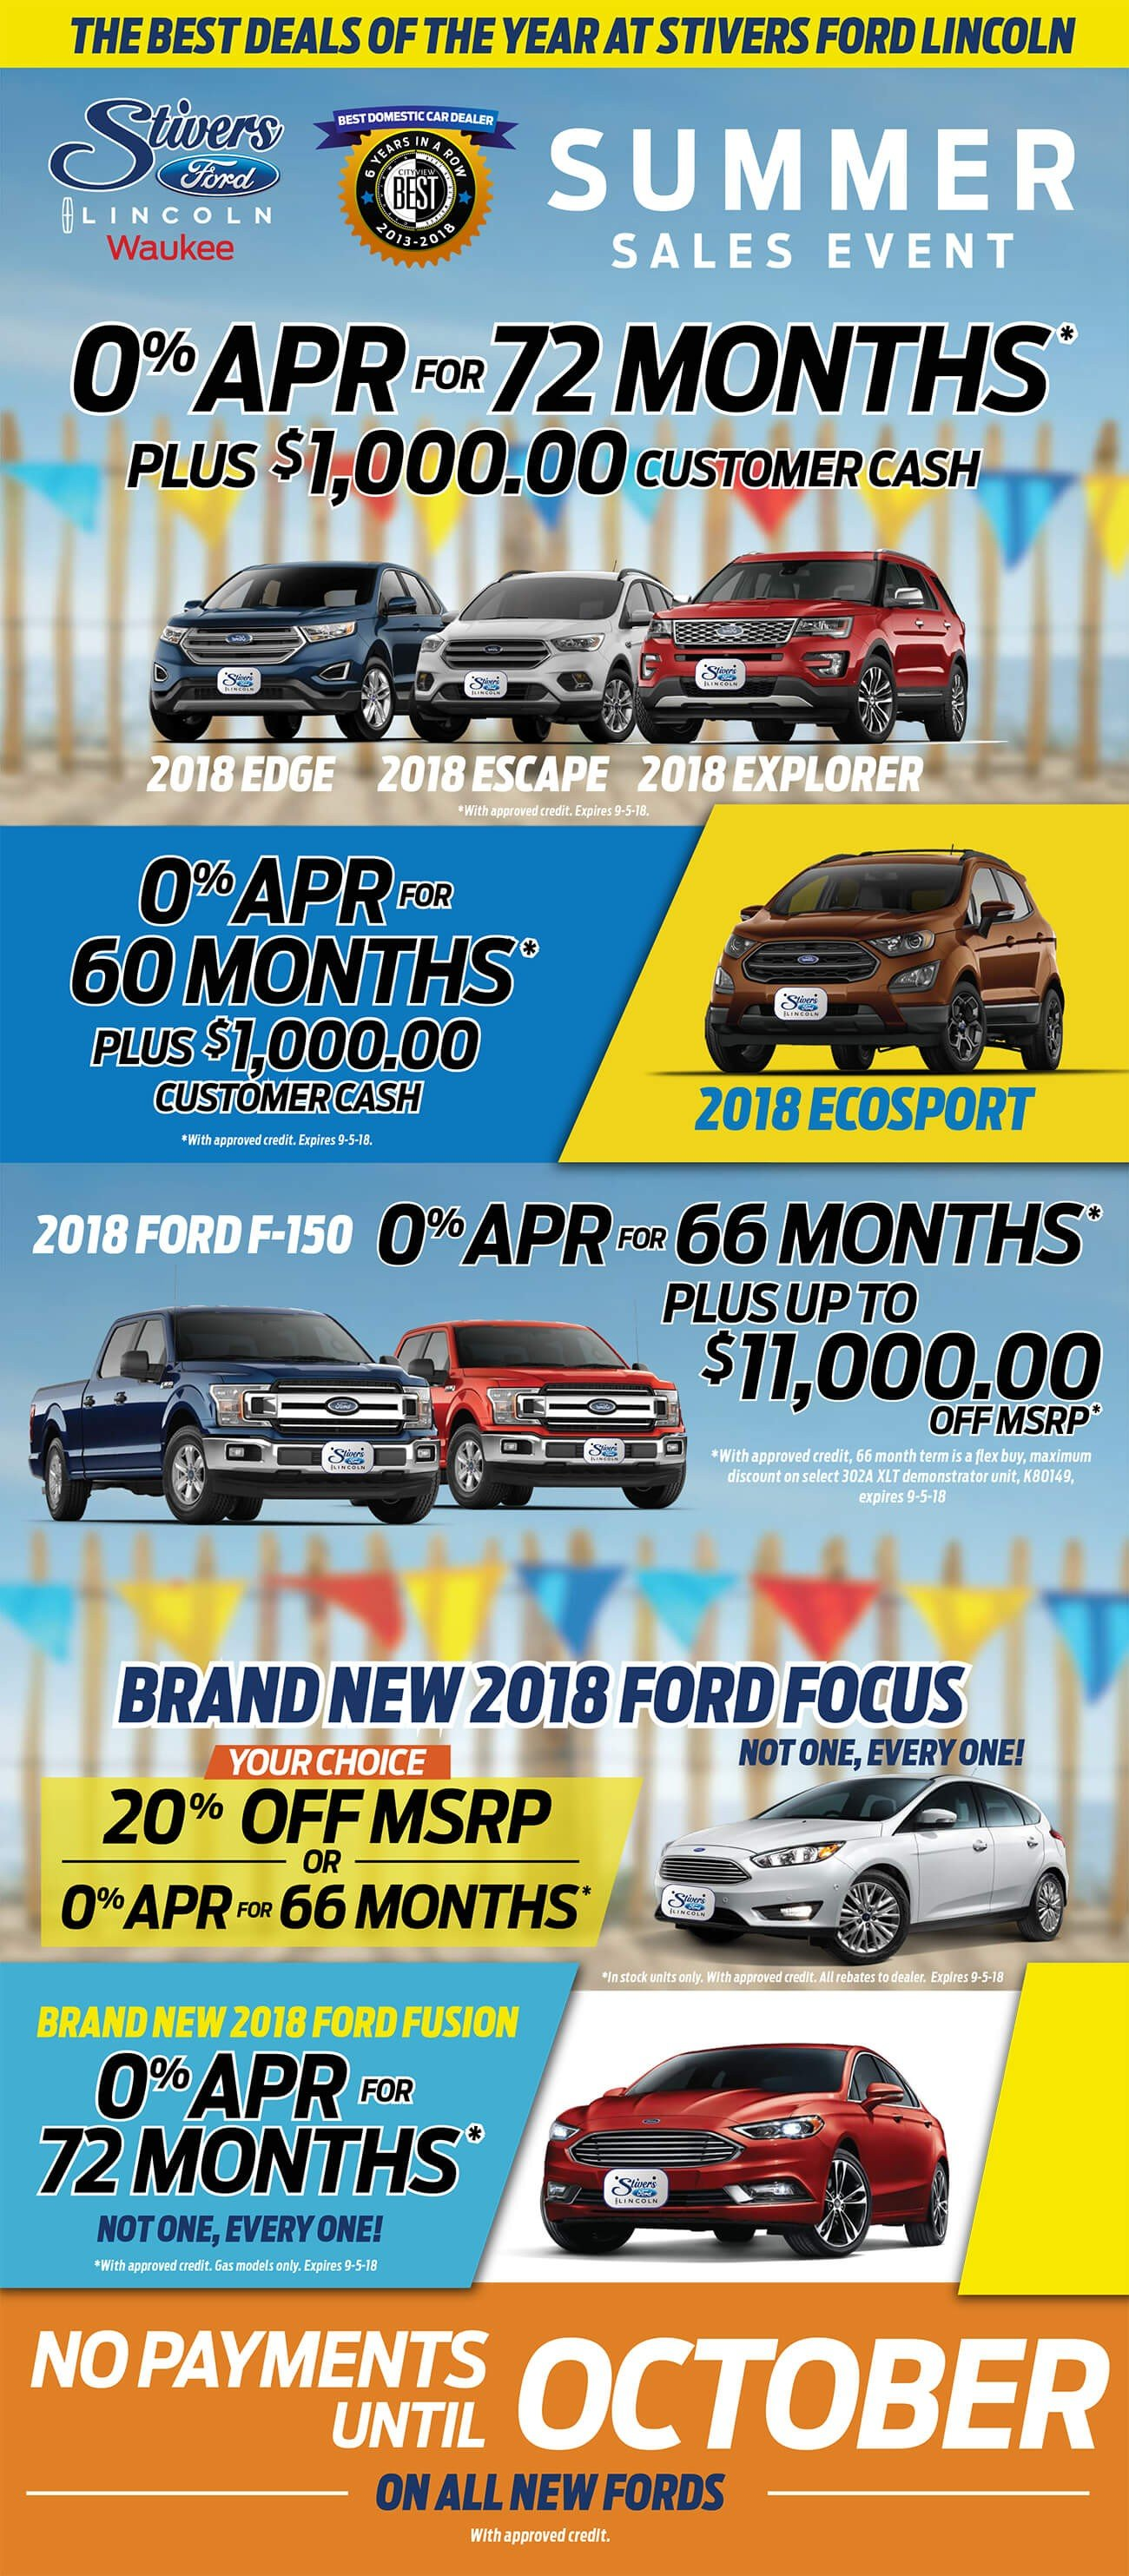 Current Ad For New Ford Lincoln Specials At Stivers Ford Lincoln